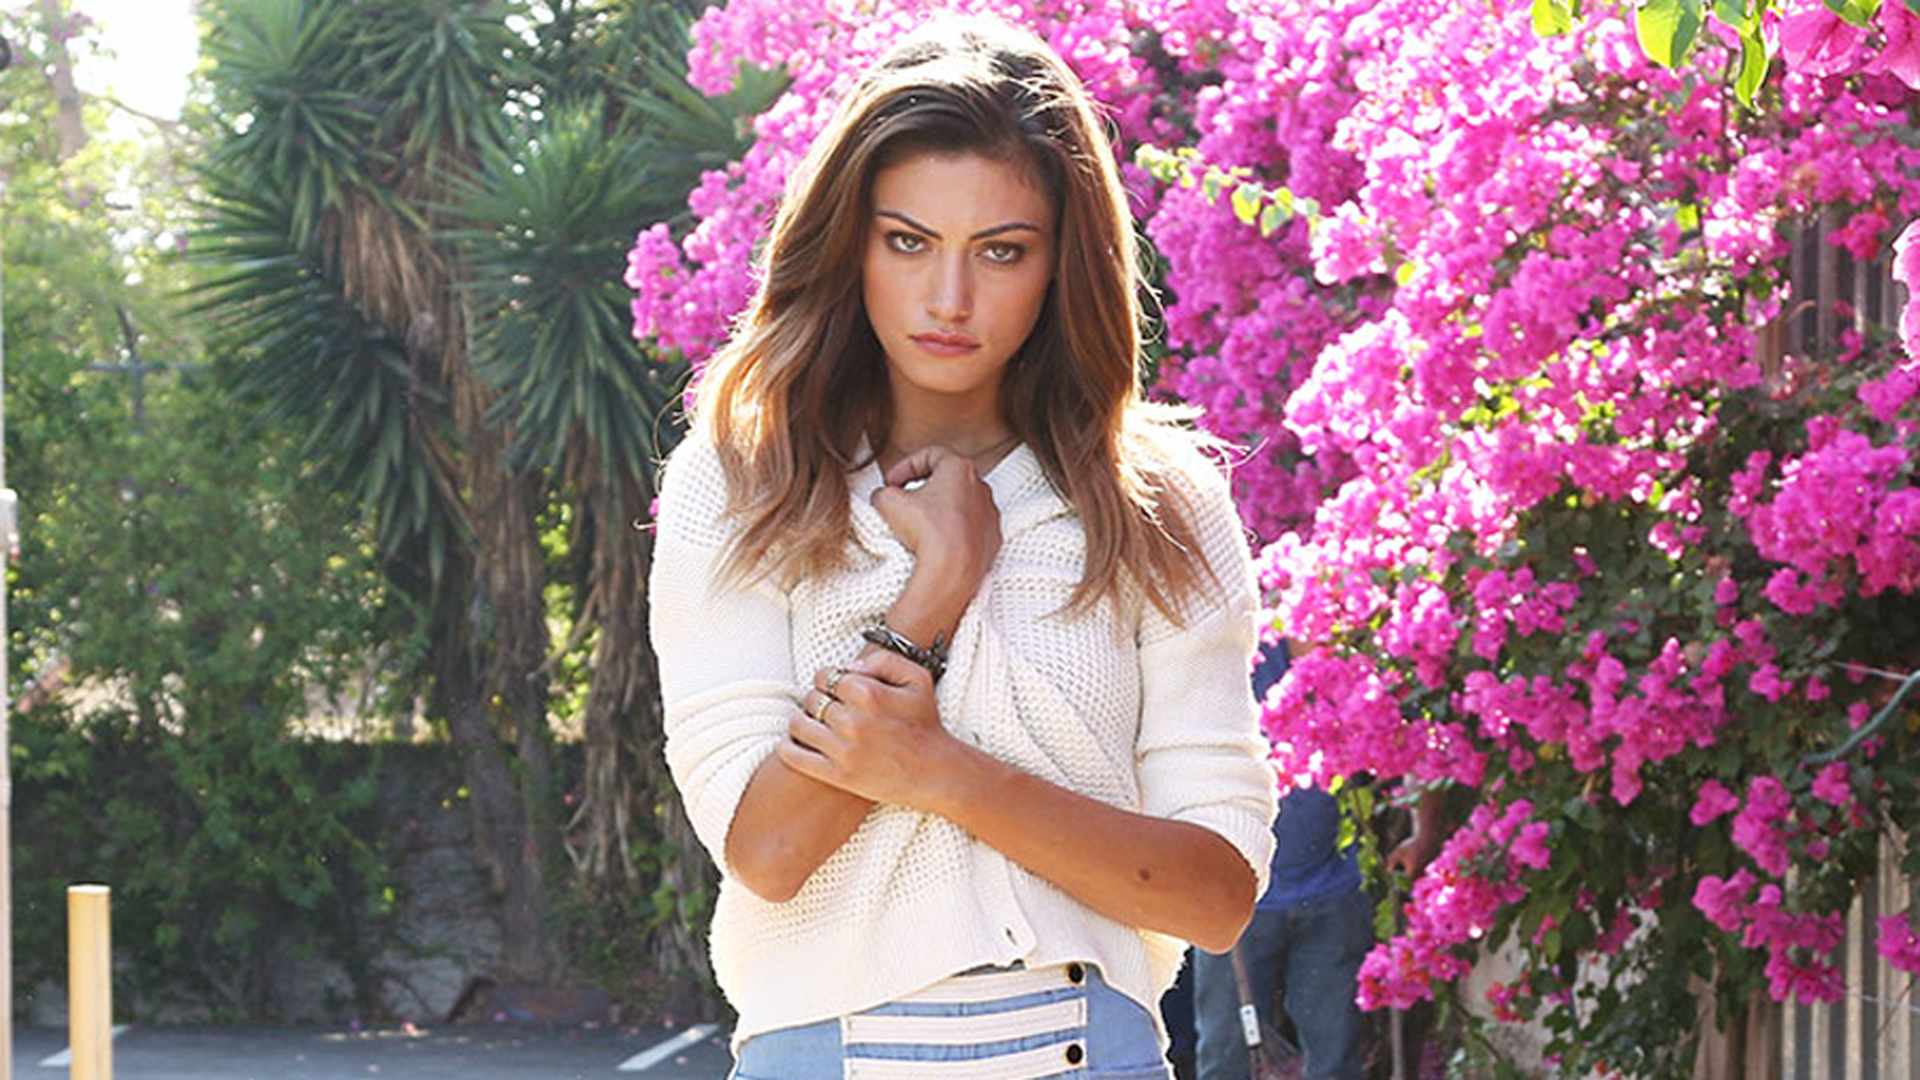 Daily Phoebe Tonkin High Definition Wallpapers